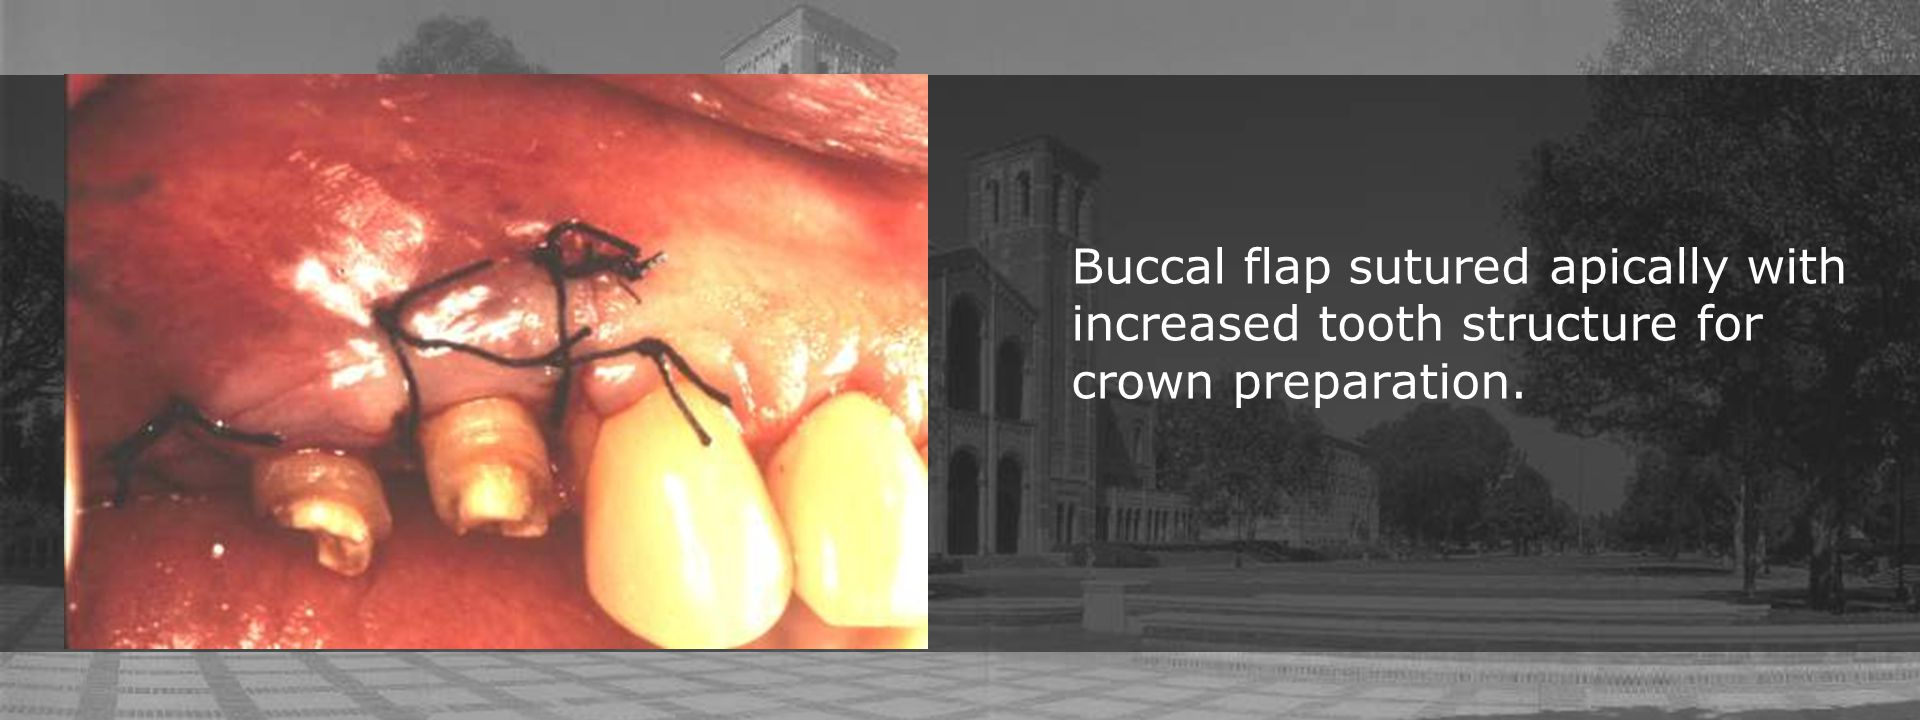 Buccal flap sutured apically with increased tooth structure for crown preparation.